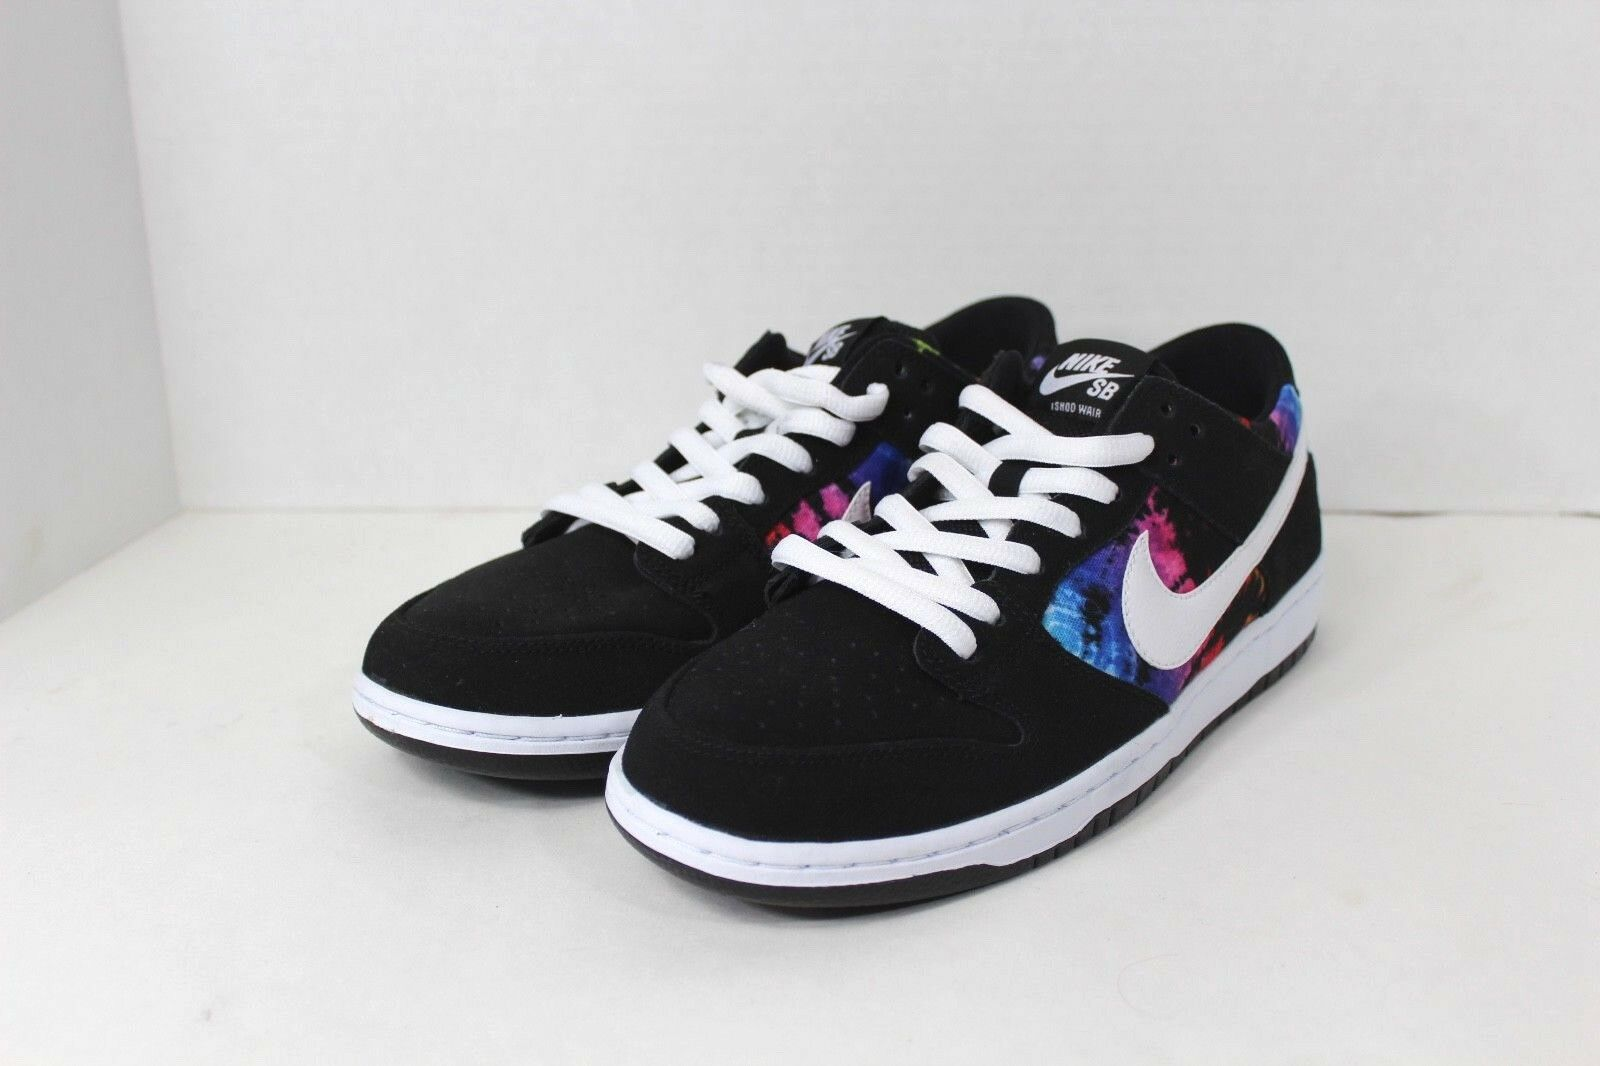 New No Box NIKE Mens Size 11 SB Dunk Low Ishod Weir Pride LGBT Rainbow Shoes